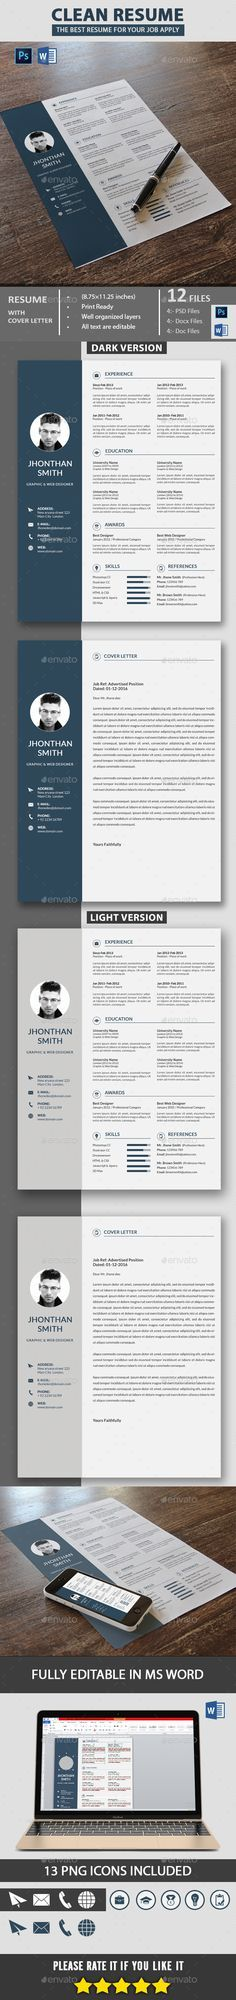 9 best Resume images on Pinterest Executive resume, Job info and - hybrid resume template word